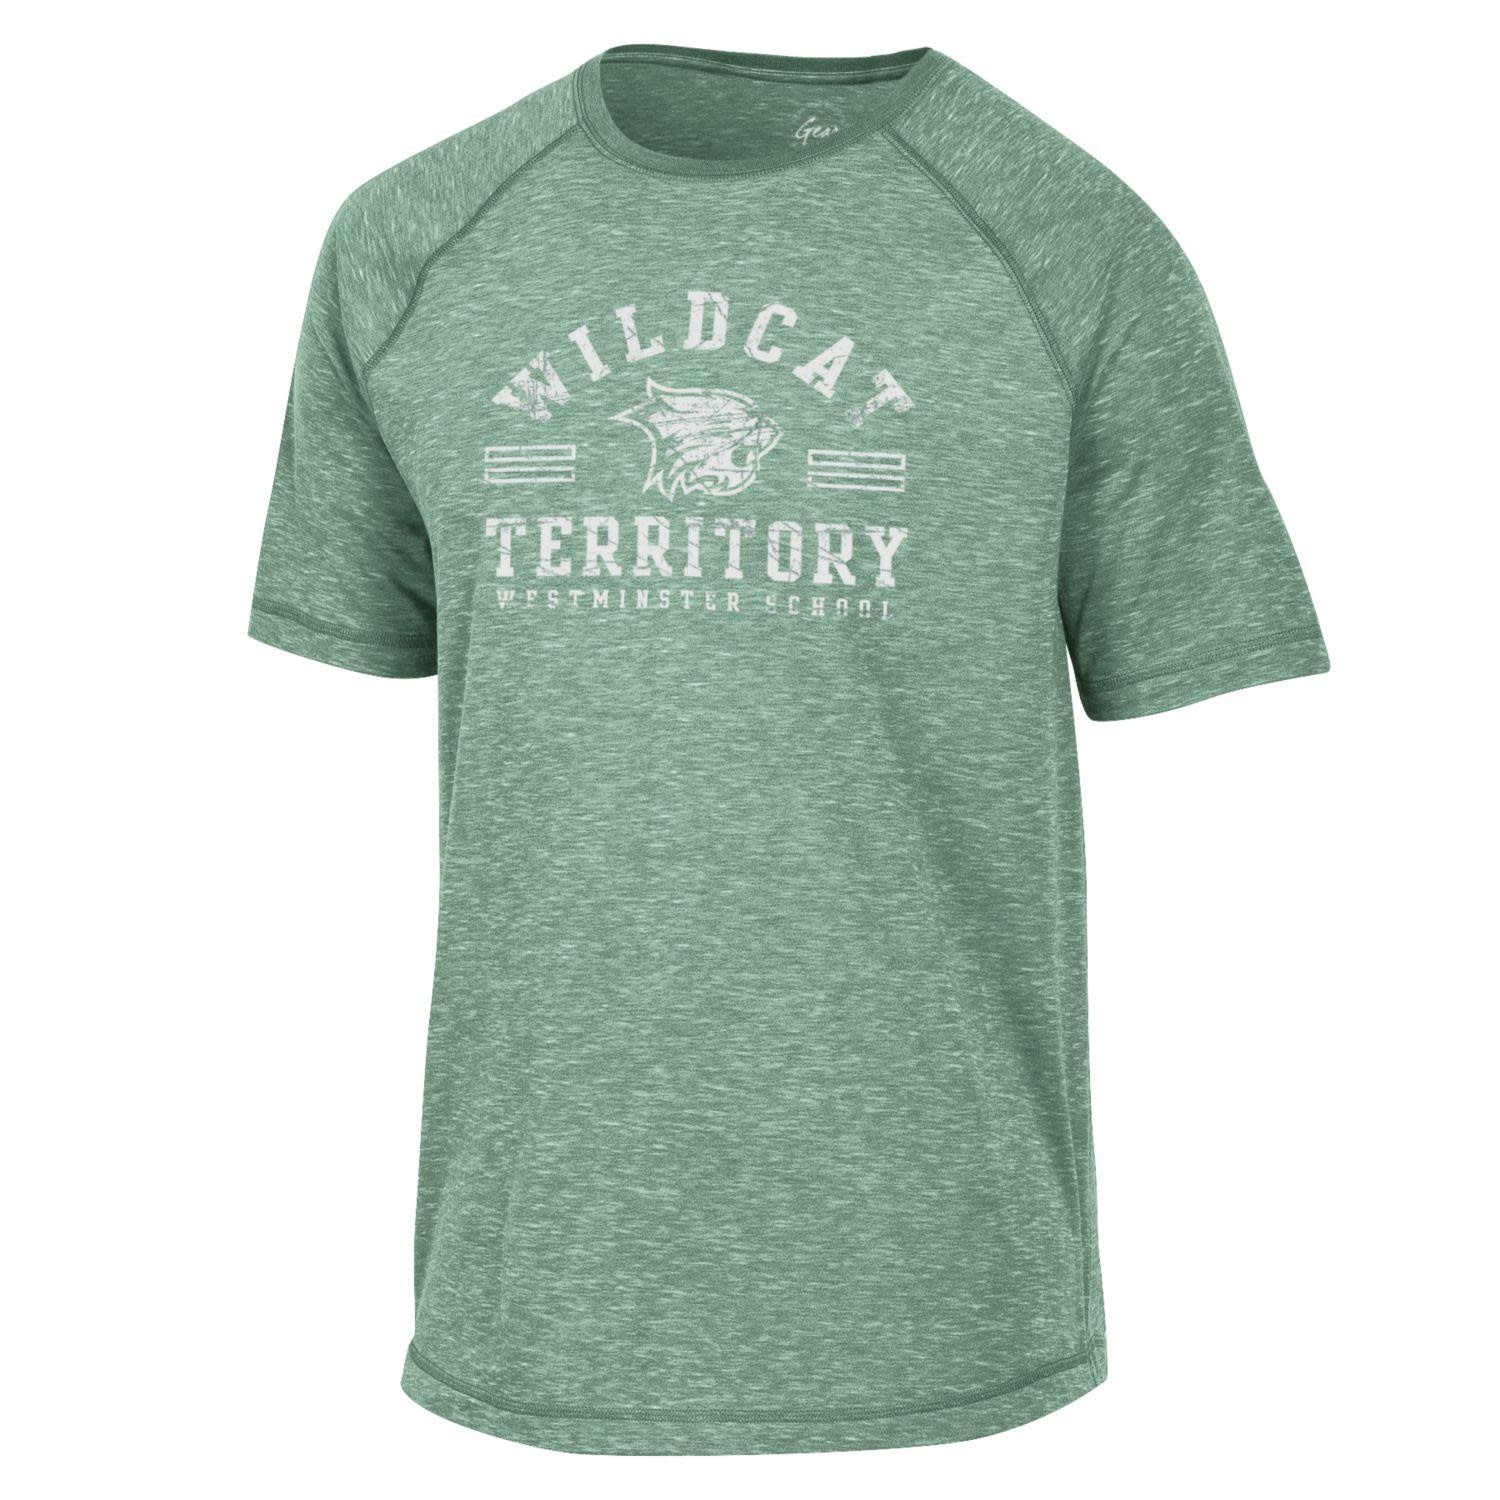 Under Armour T: Fireside Raglan Tee - Nurture Green, Territory